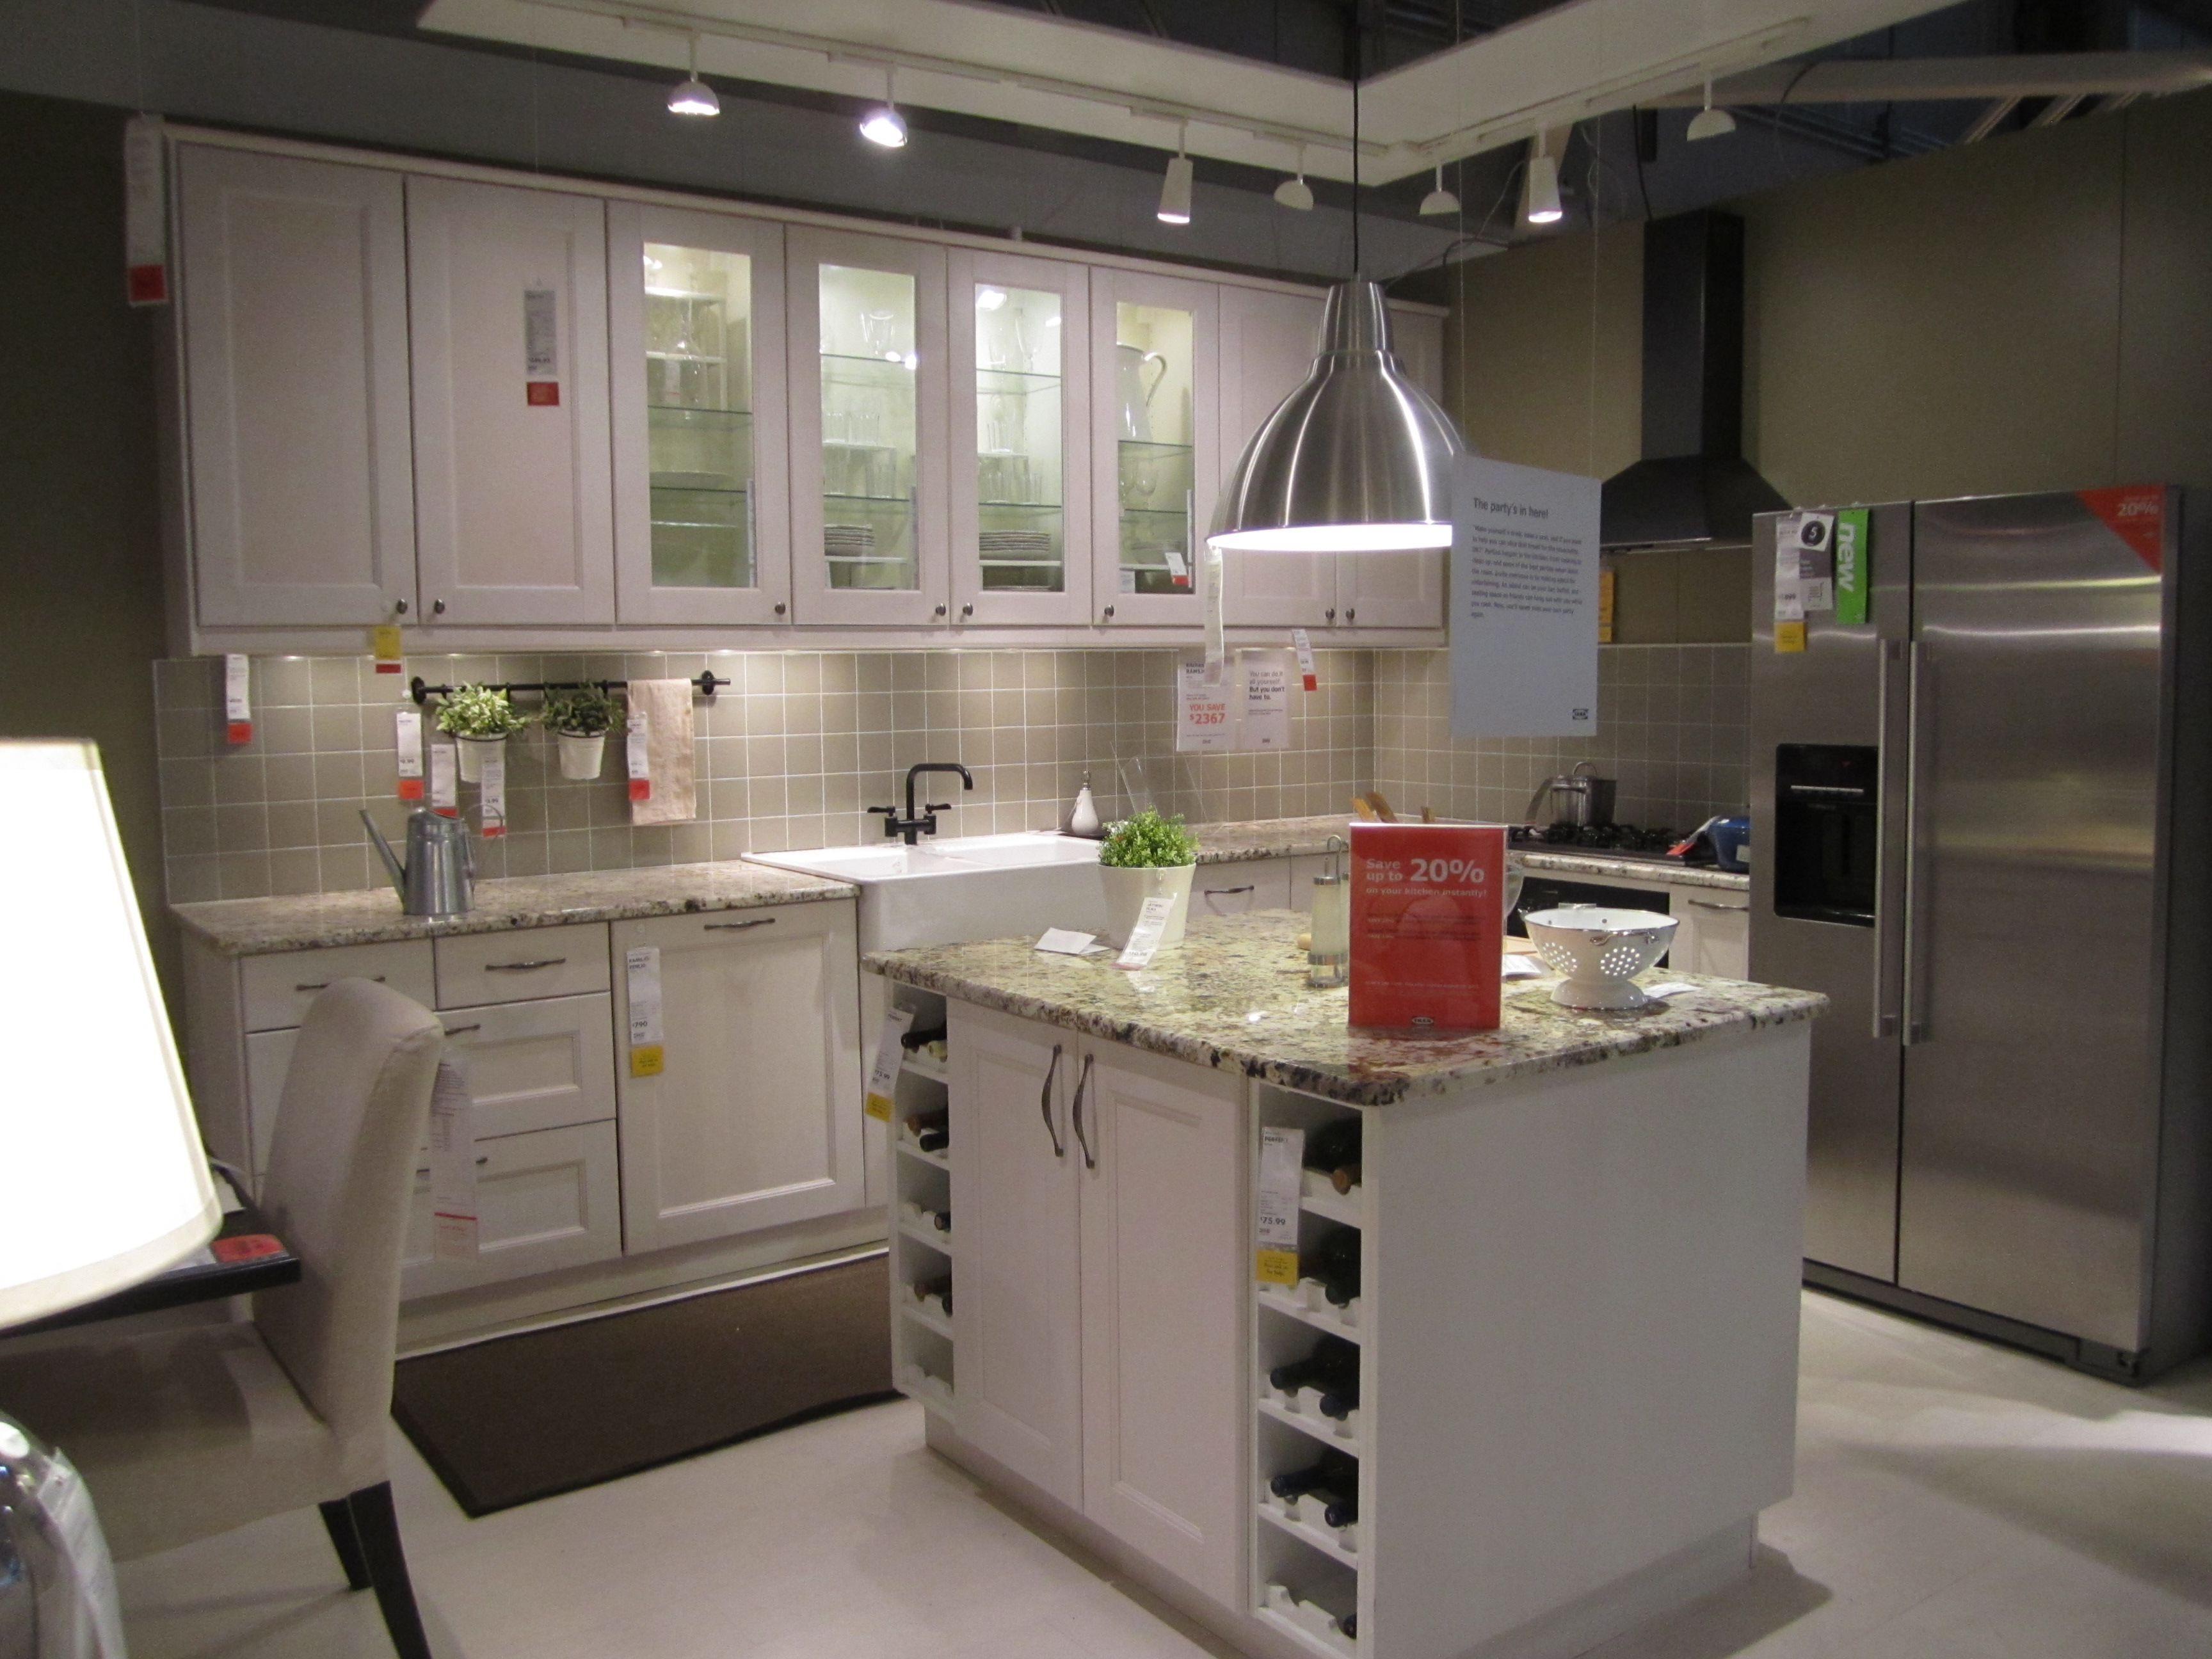 Weekend trip ikea element of chic for Small kitchens ikea